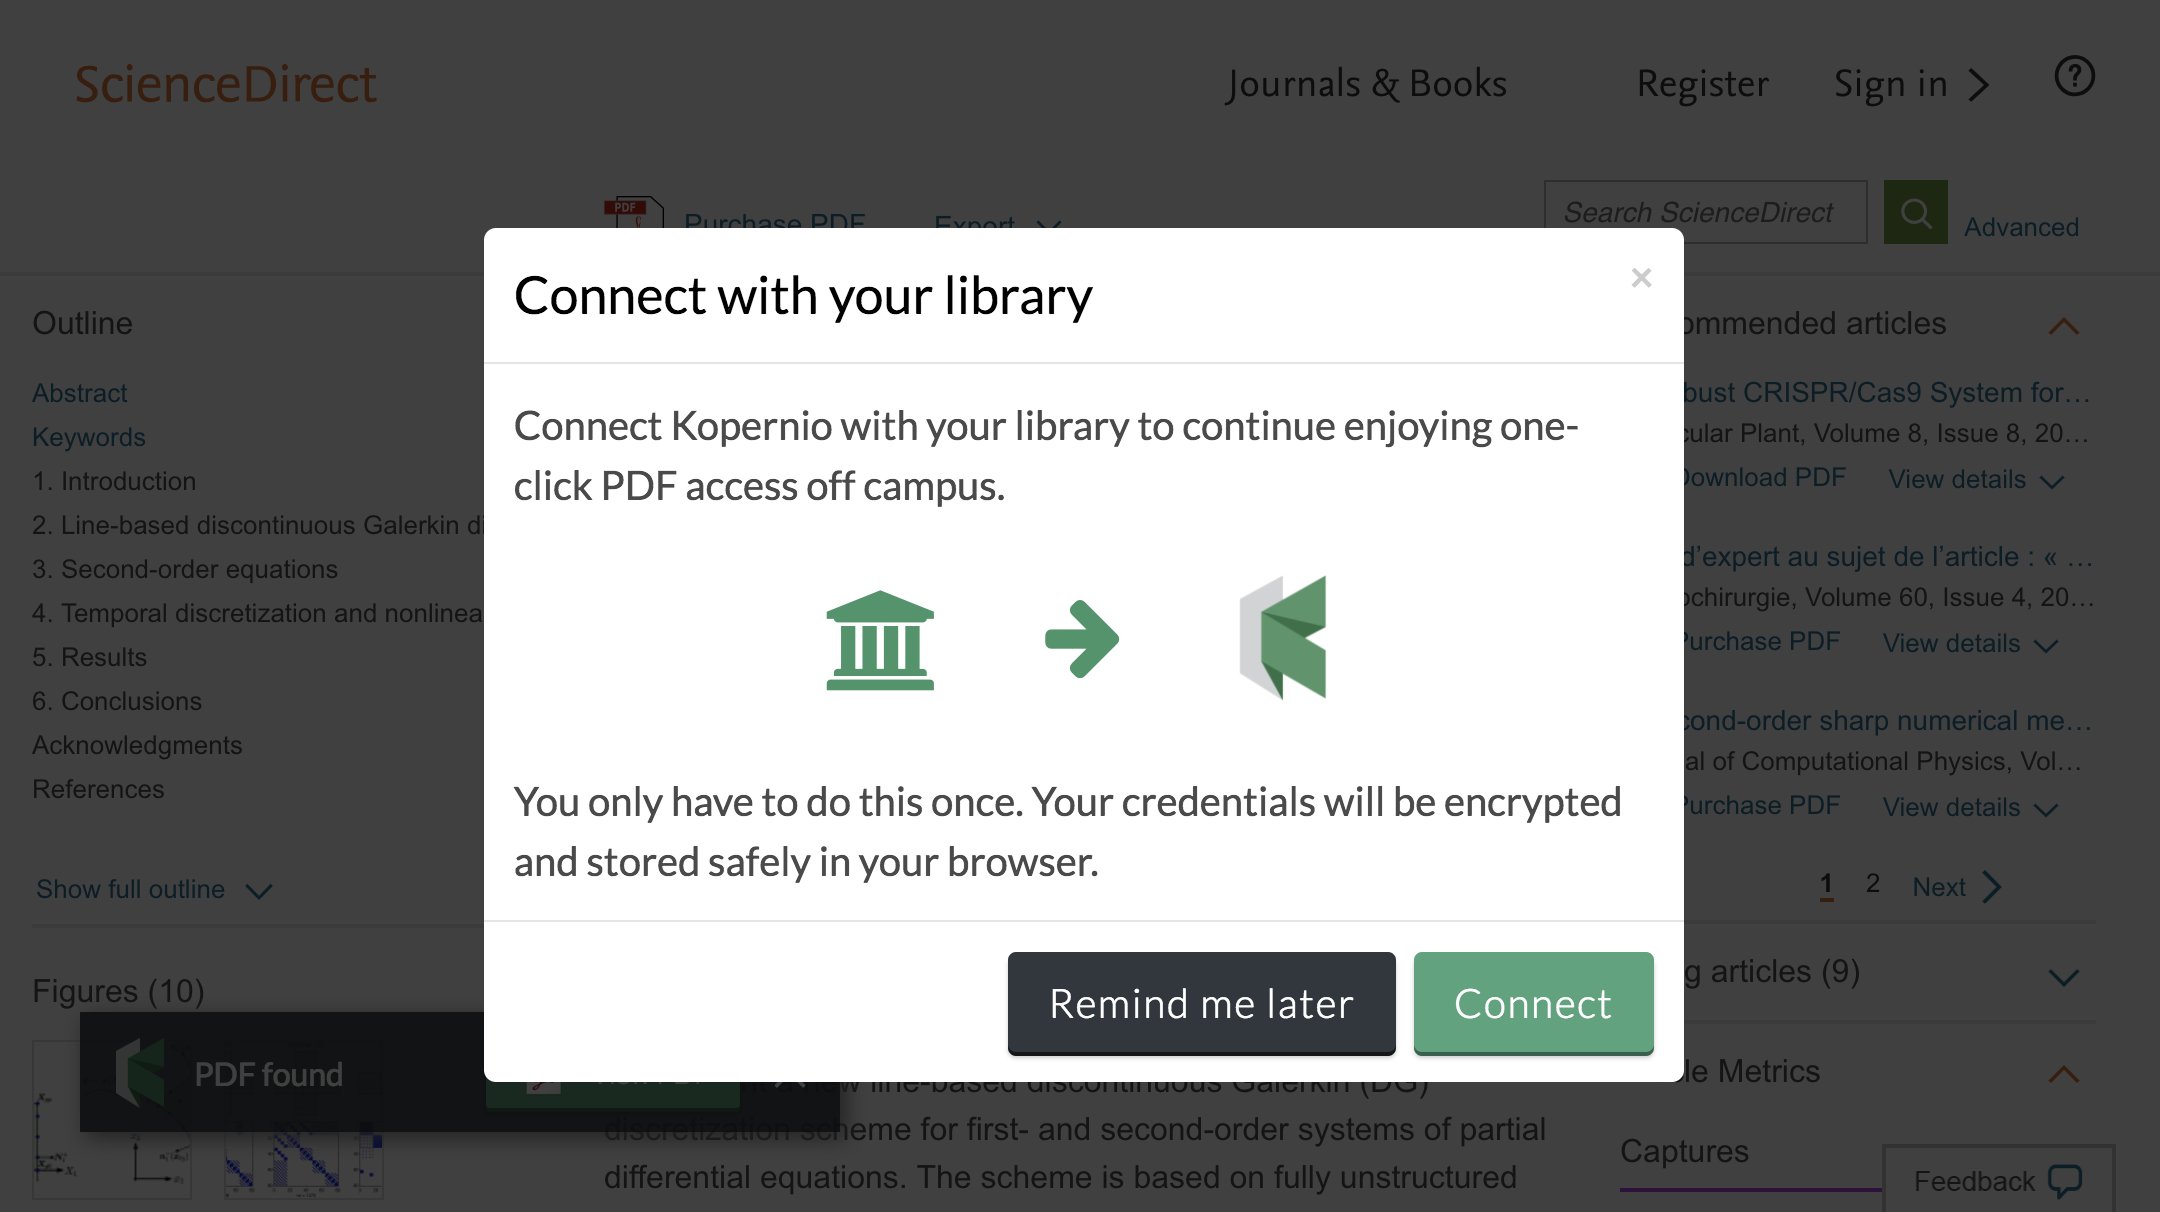 Connect to library prompt for off-campus access to South Dakota State University e-resources.